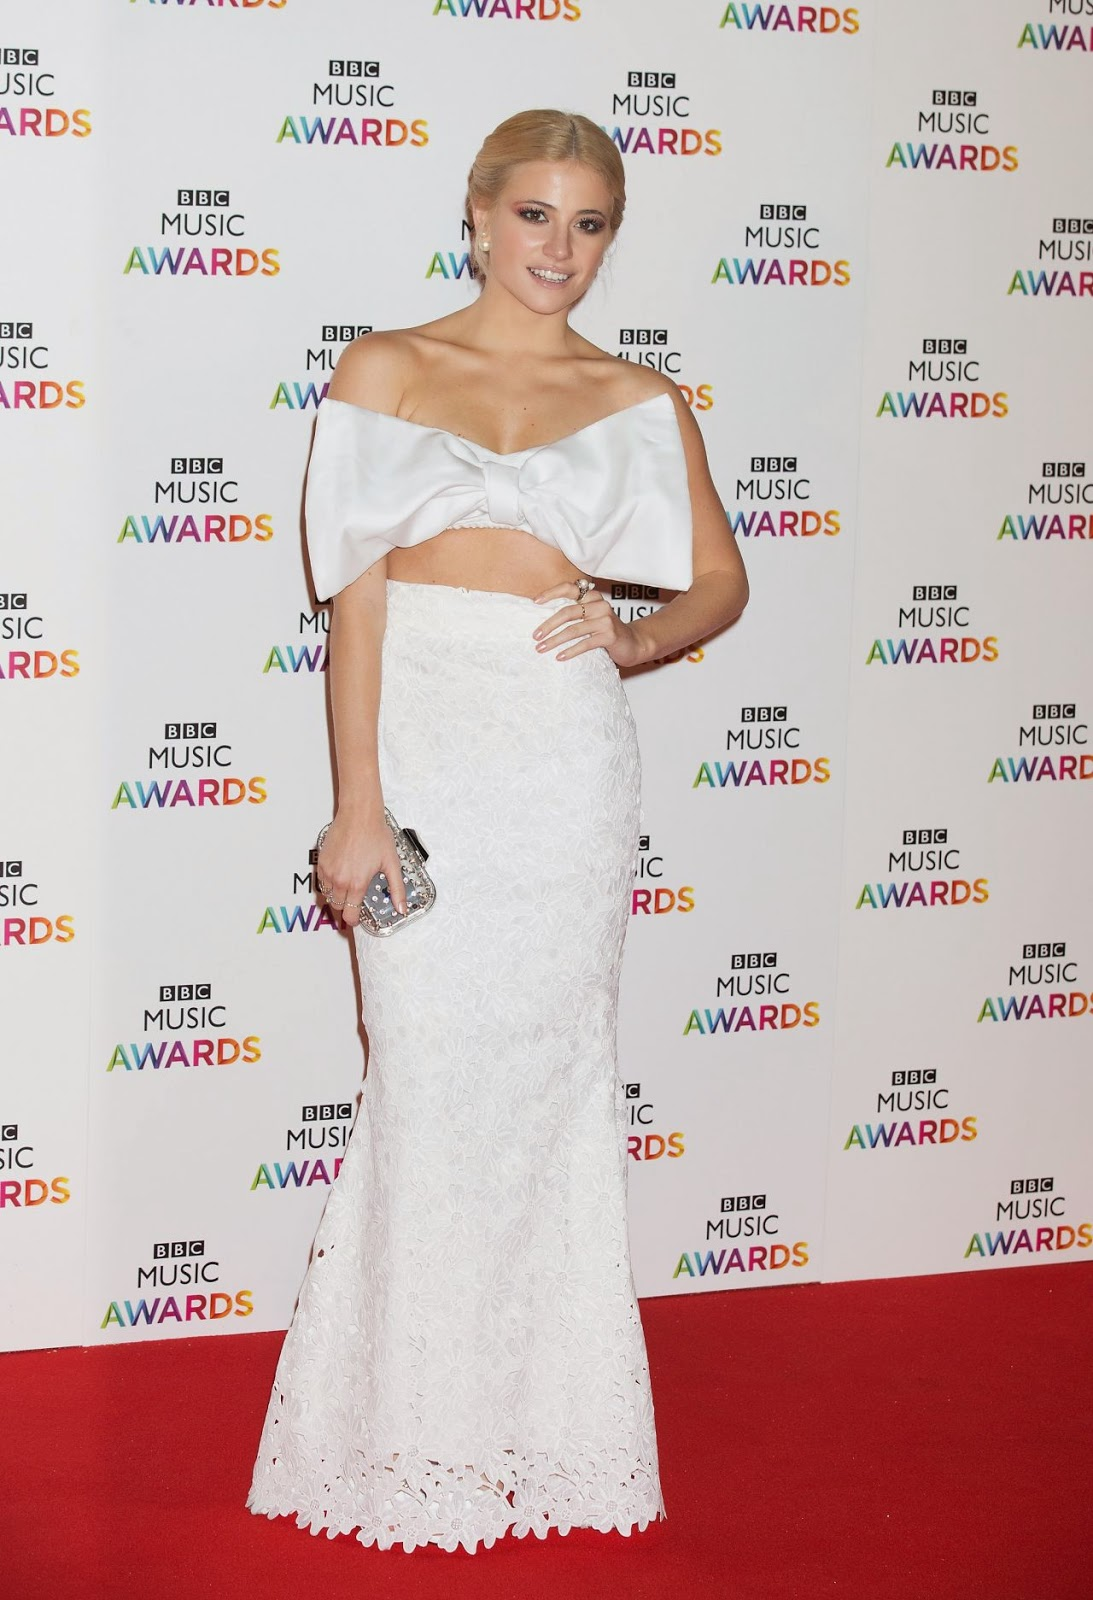 Pixie Lott in a bow cropped top at the 2014 BBC Music Awards in London